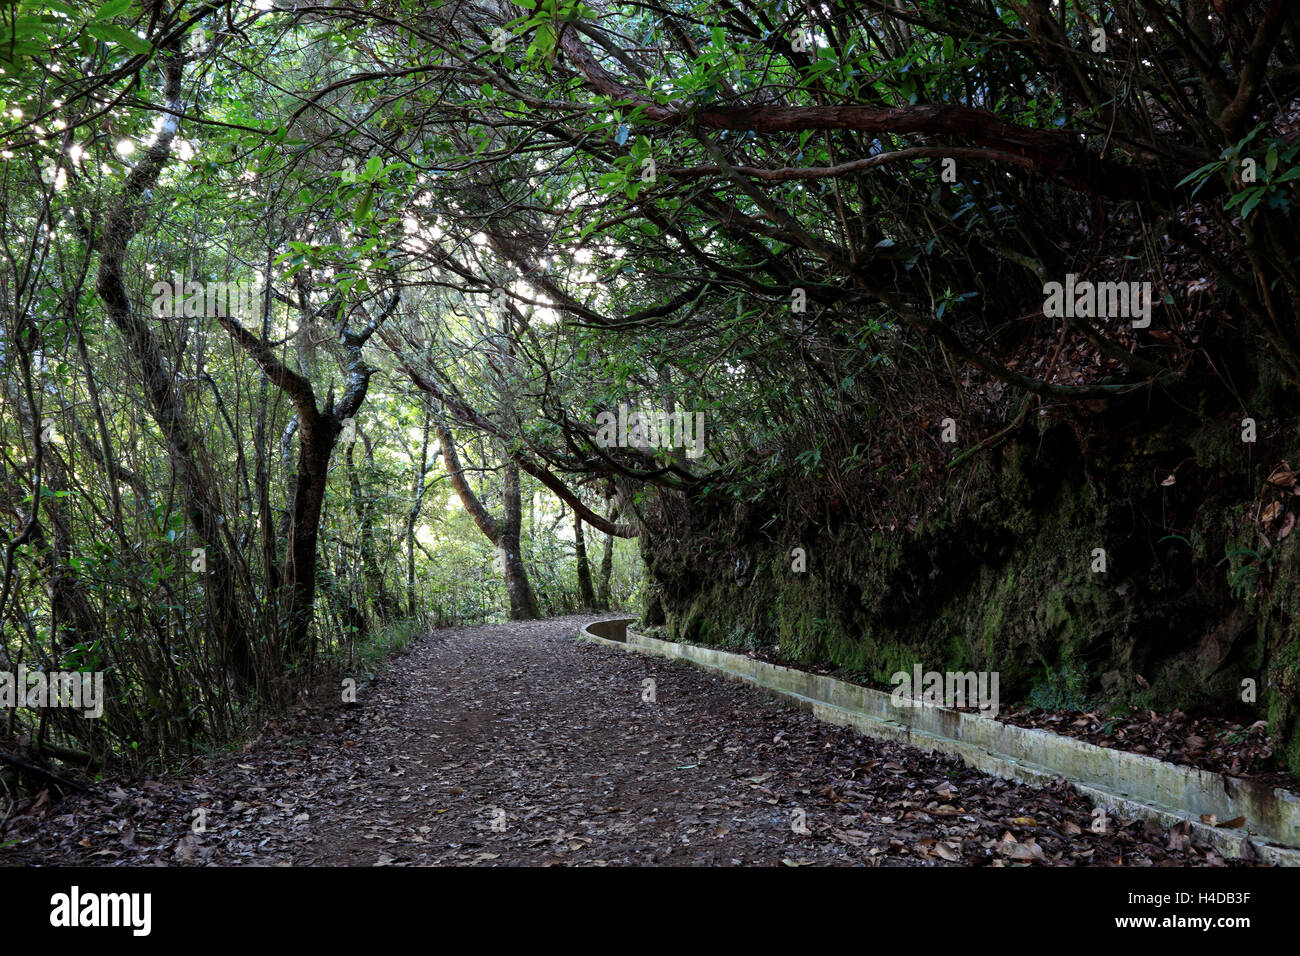 Footpath in the bay leaf wood, along Levada Wasserleitung, Madeira - Stock Image